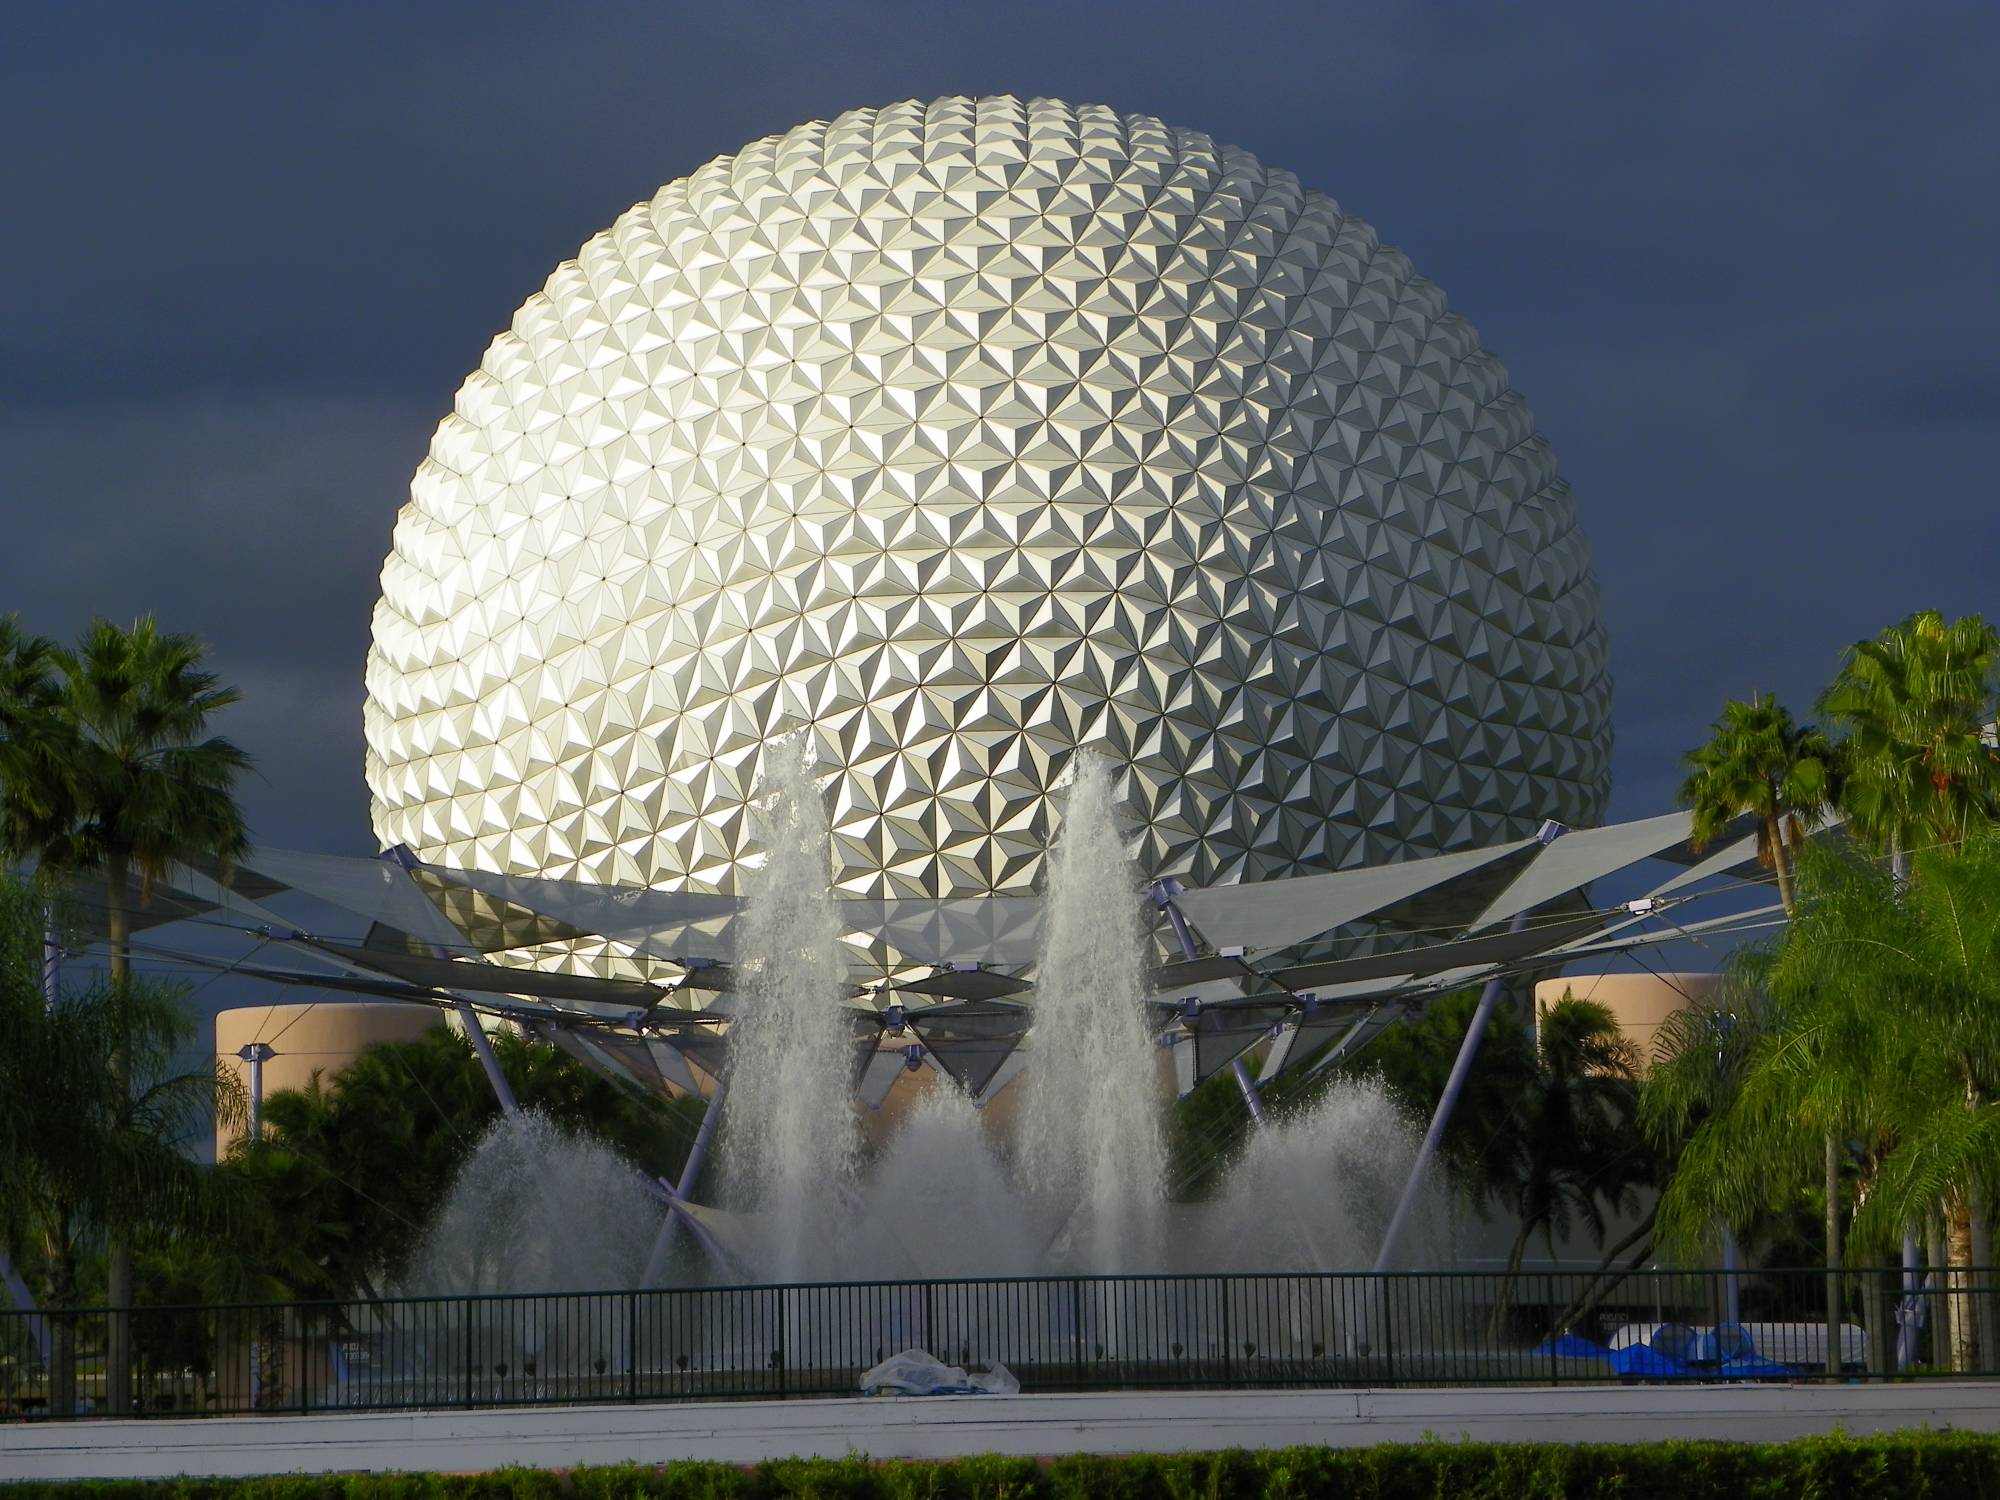 Sun shining off Spaceship Earth against a stormy sky